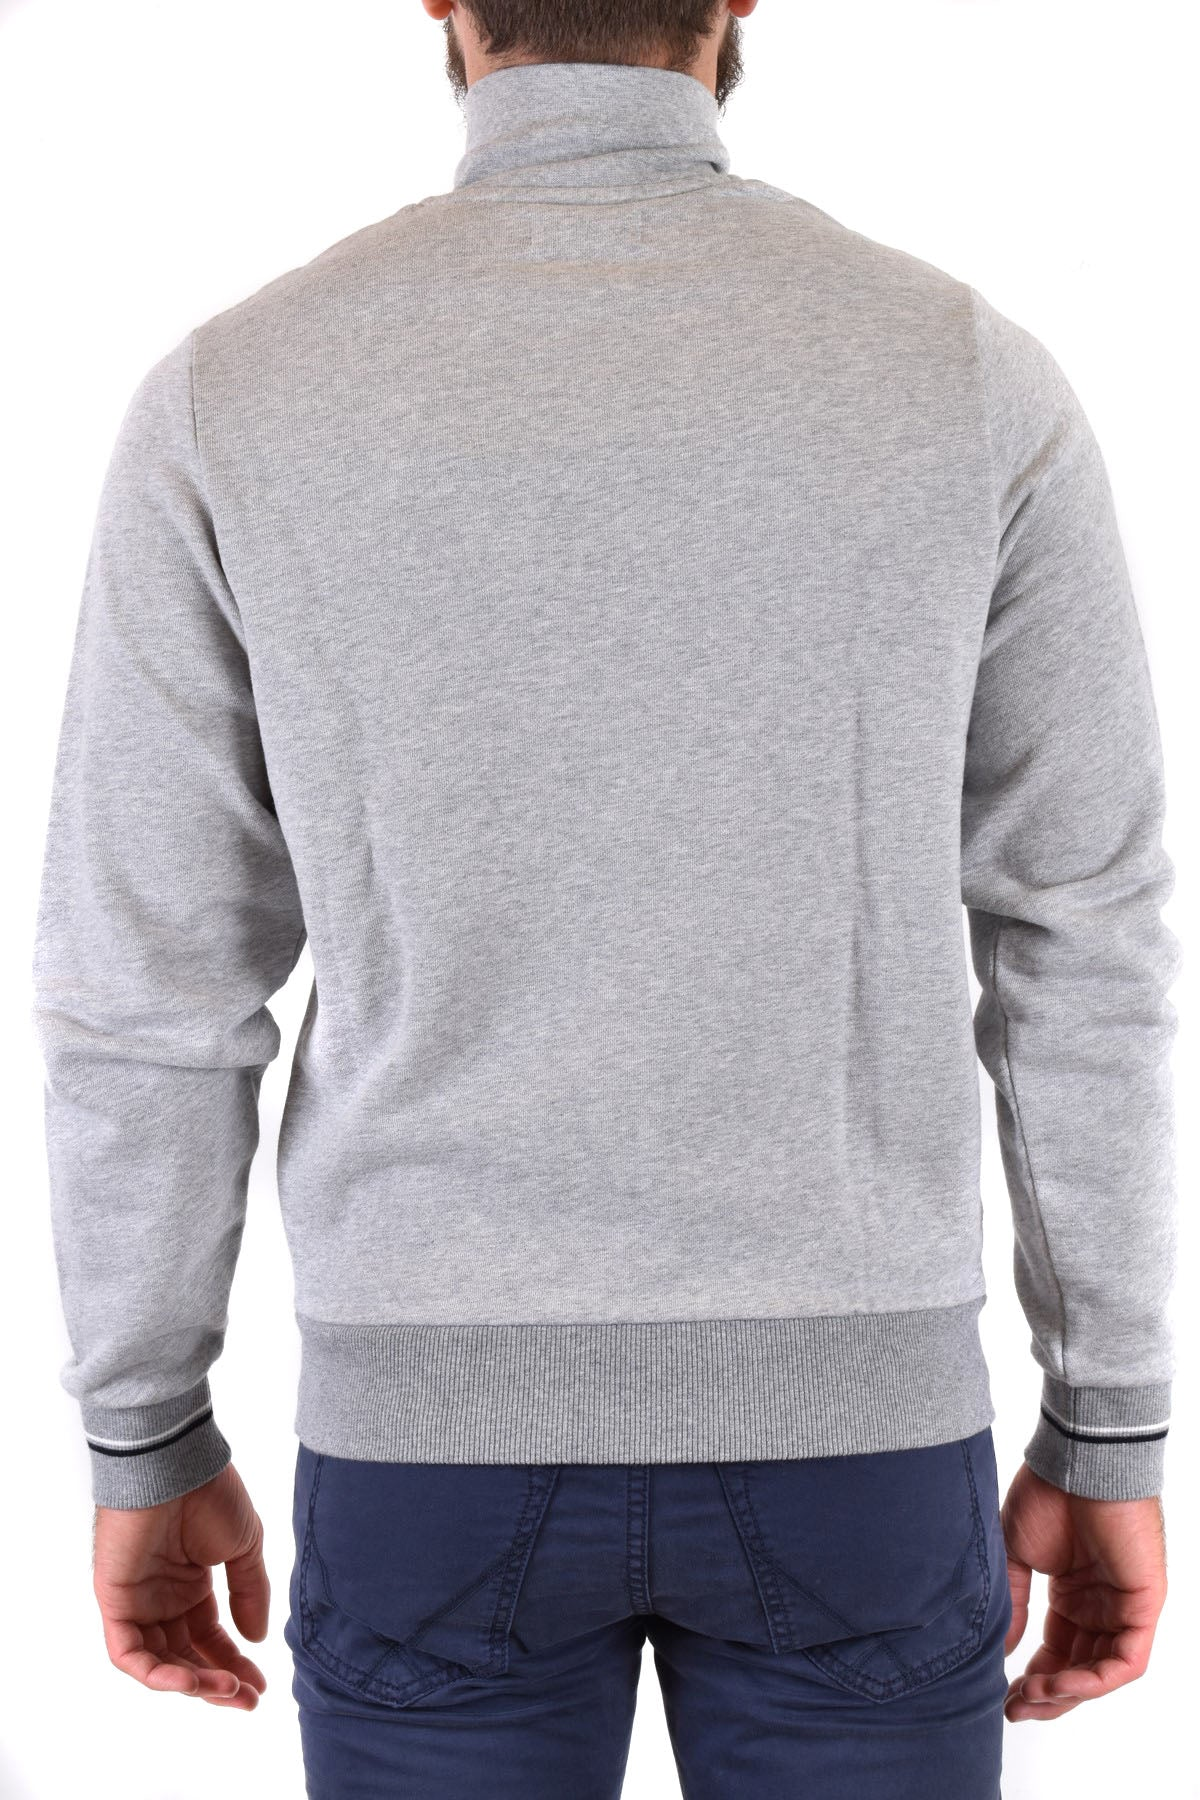 Sweatshirt Fred Perry-Men's Fashion - Men's Clothing - Hoodies & Sweatshirts-Product Details Terms: New With LabelClothing Type: SweatshirtsMain Color: GraySeason: Fall / WinterMade In: ChinaGender: ManSize: IntComposition: Cotton 100%Year: 2020Manufacturer Part Number: J3522 Col250-Keyomi-Sook